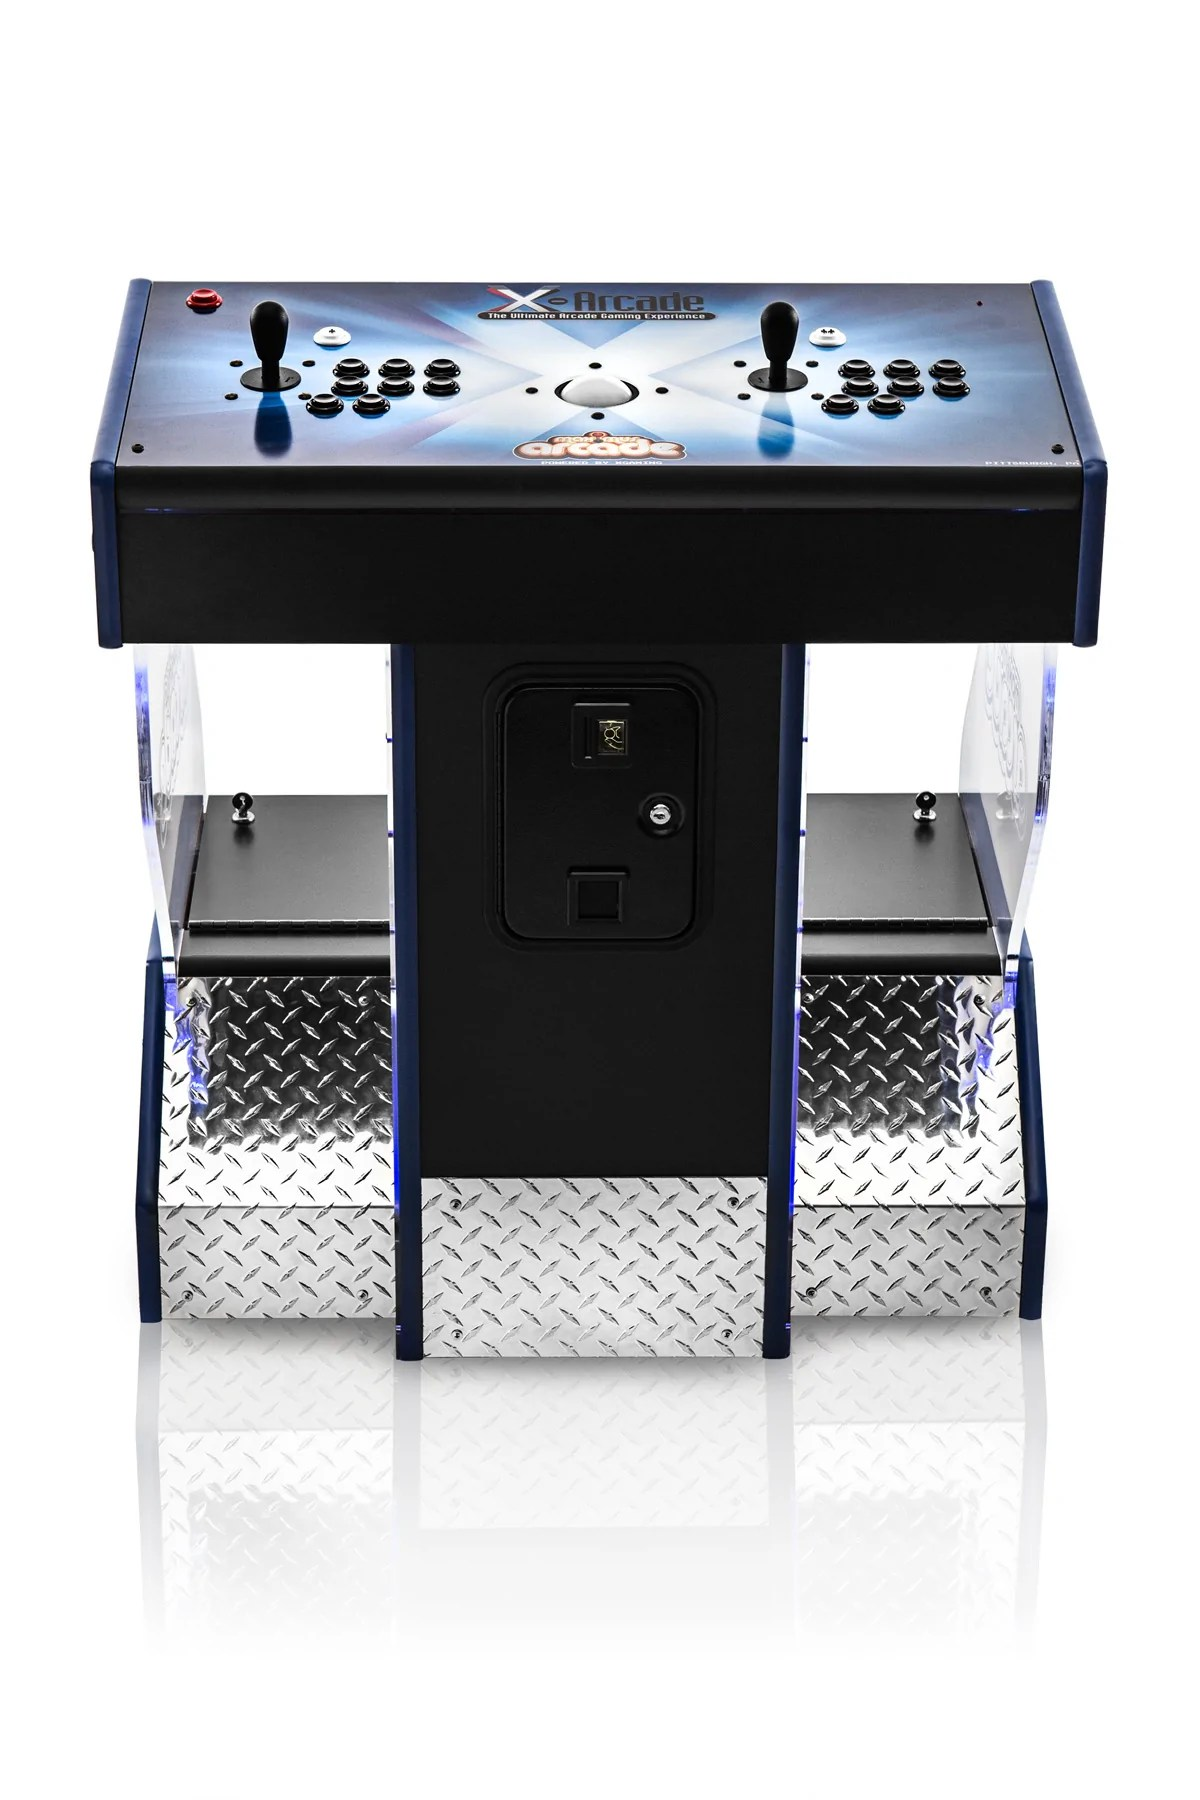 The Ultimate Mame Cabinet Xgaming X Arcade